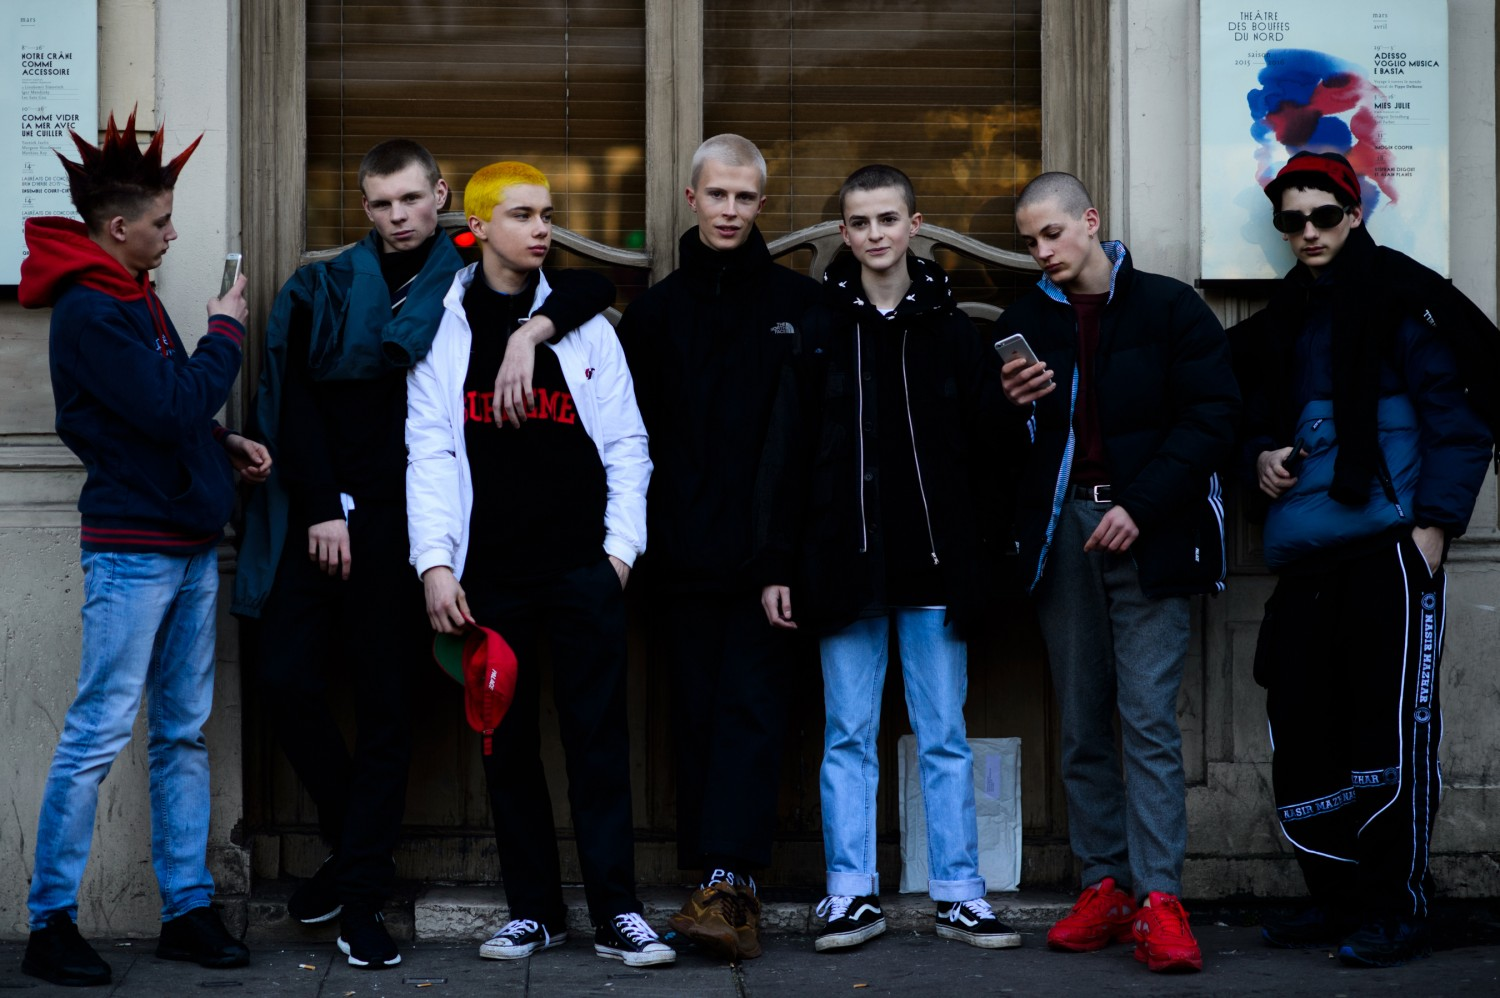 Le-21eme-Adam-Katz-Sinding-After-Gosha-Rubchinskiy-Paris-Mens-Fashion-Week-Fall-Winter-2016-2017_AKS5733-1500x998